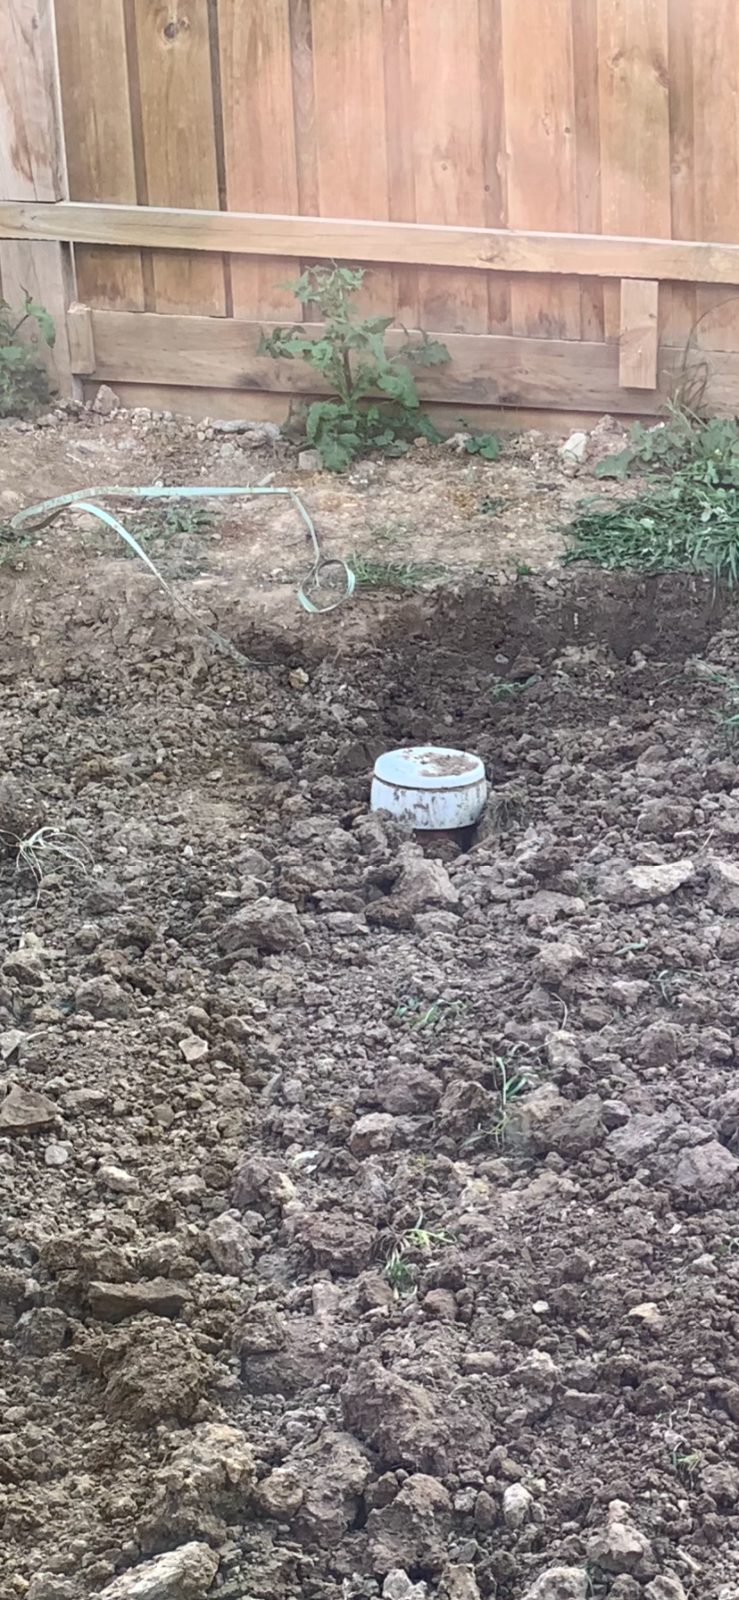 Patio area for a new build - What is this?